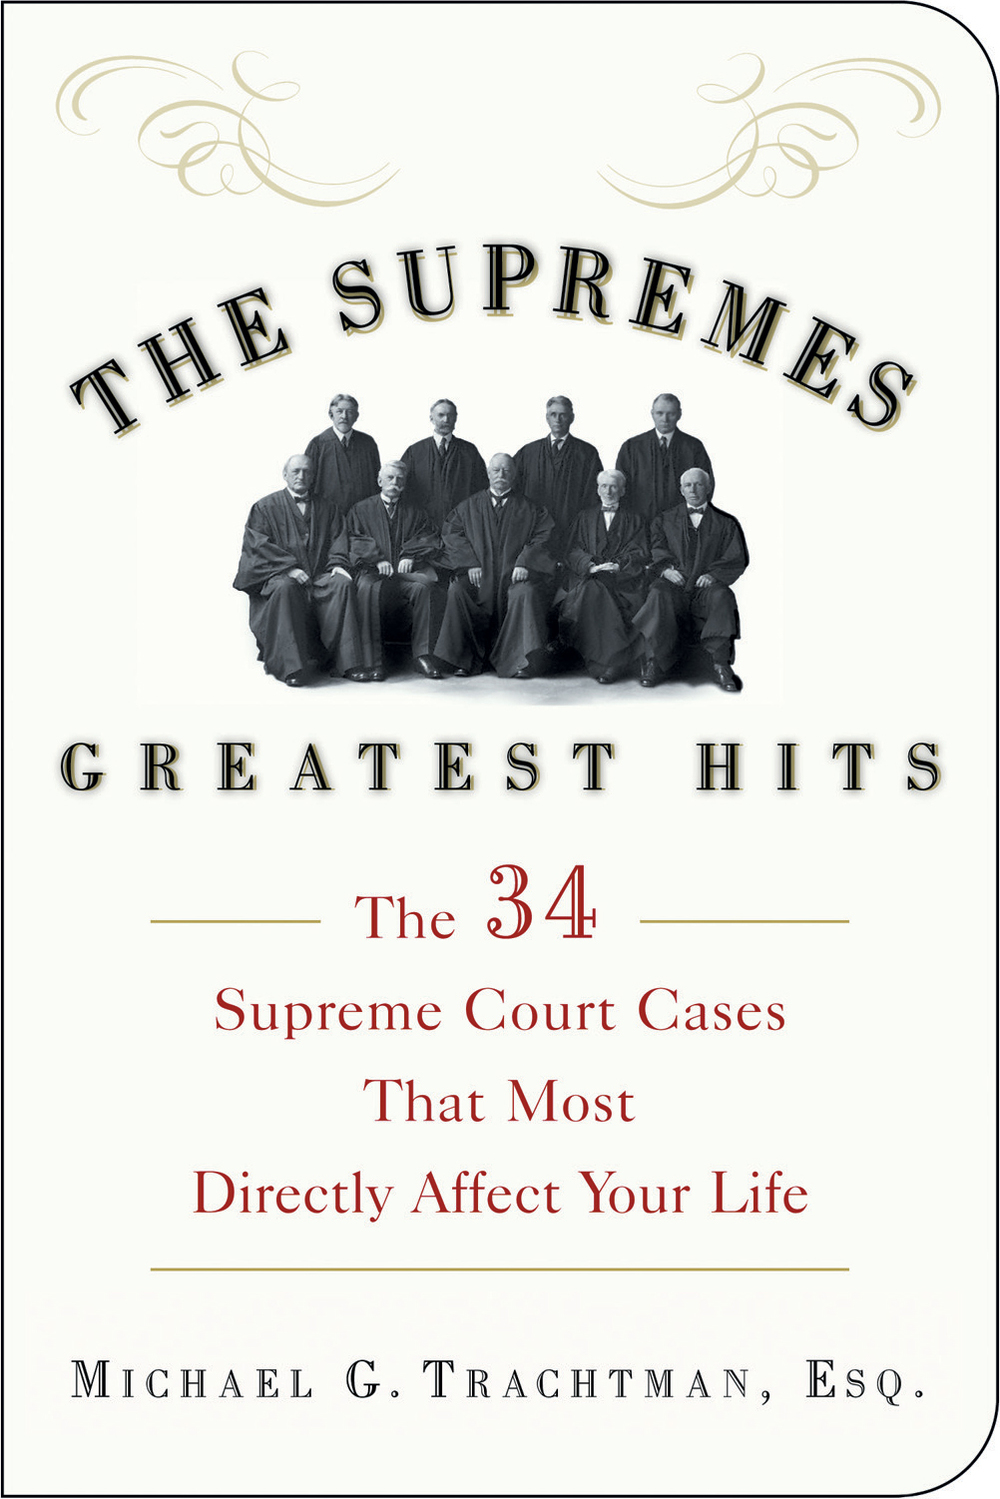 THE-SUPREMES-GREATEST-HITS-ss6.jpg